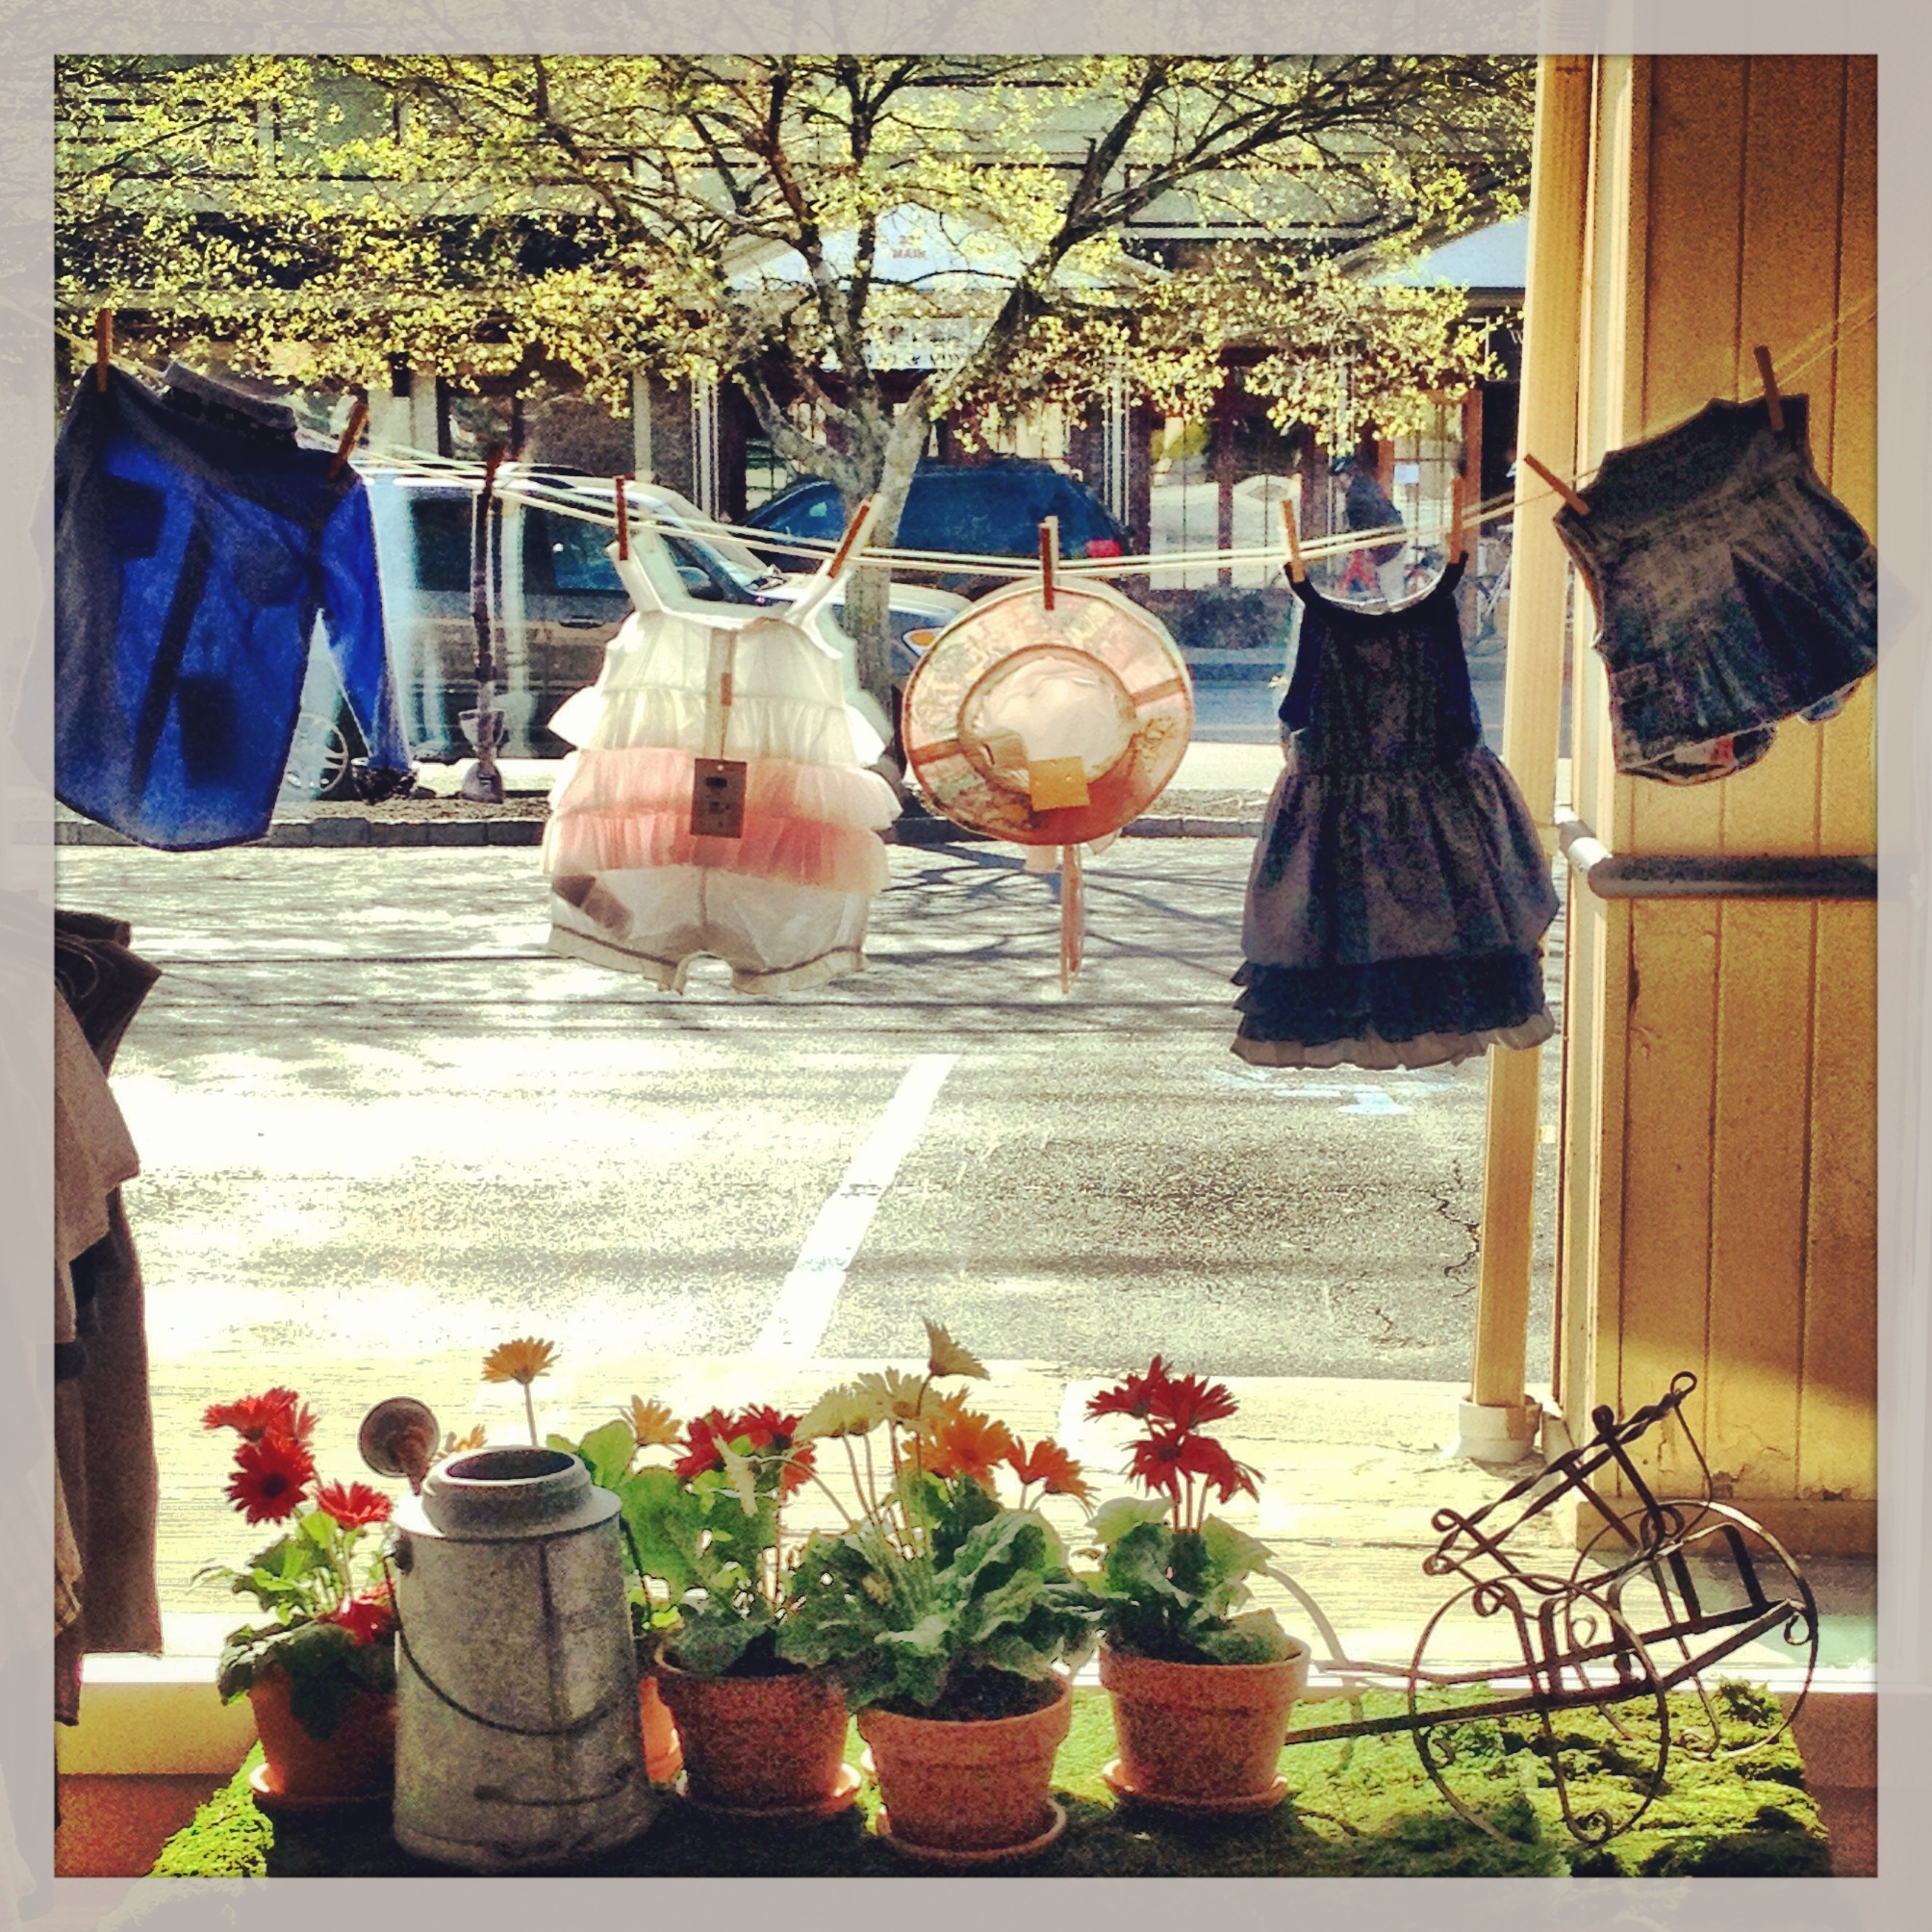 Our garden inspired Spring window :) with real plants and moss and some of our favorite pieces from our spring collection!